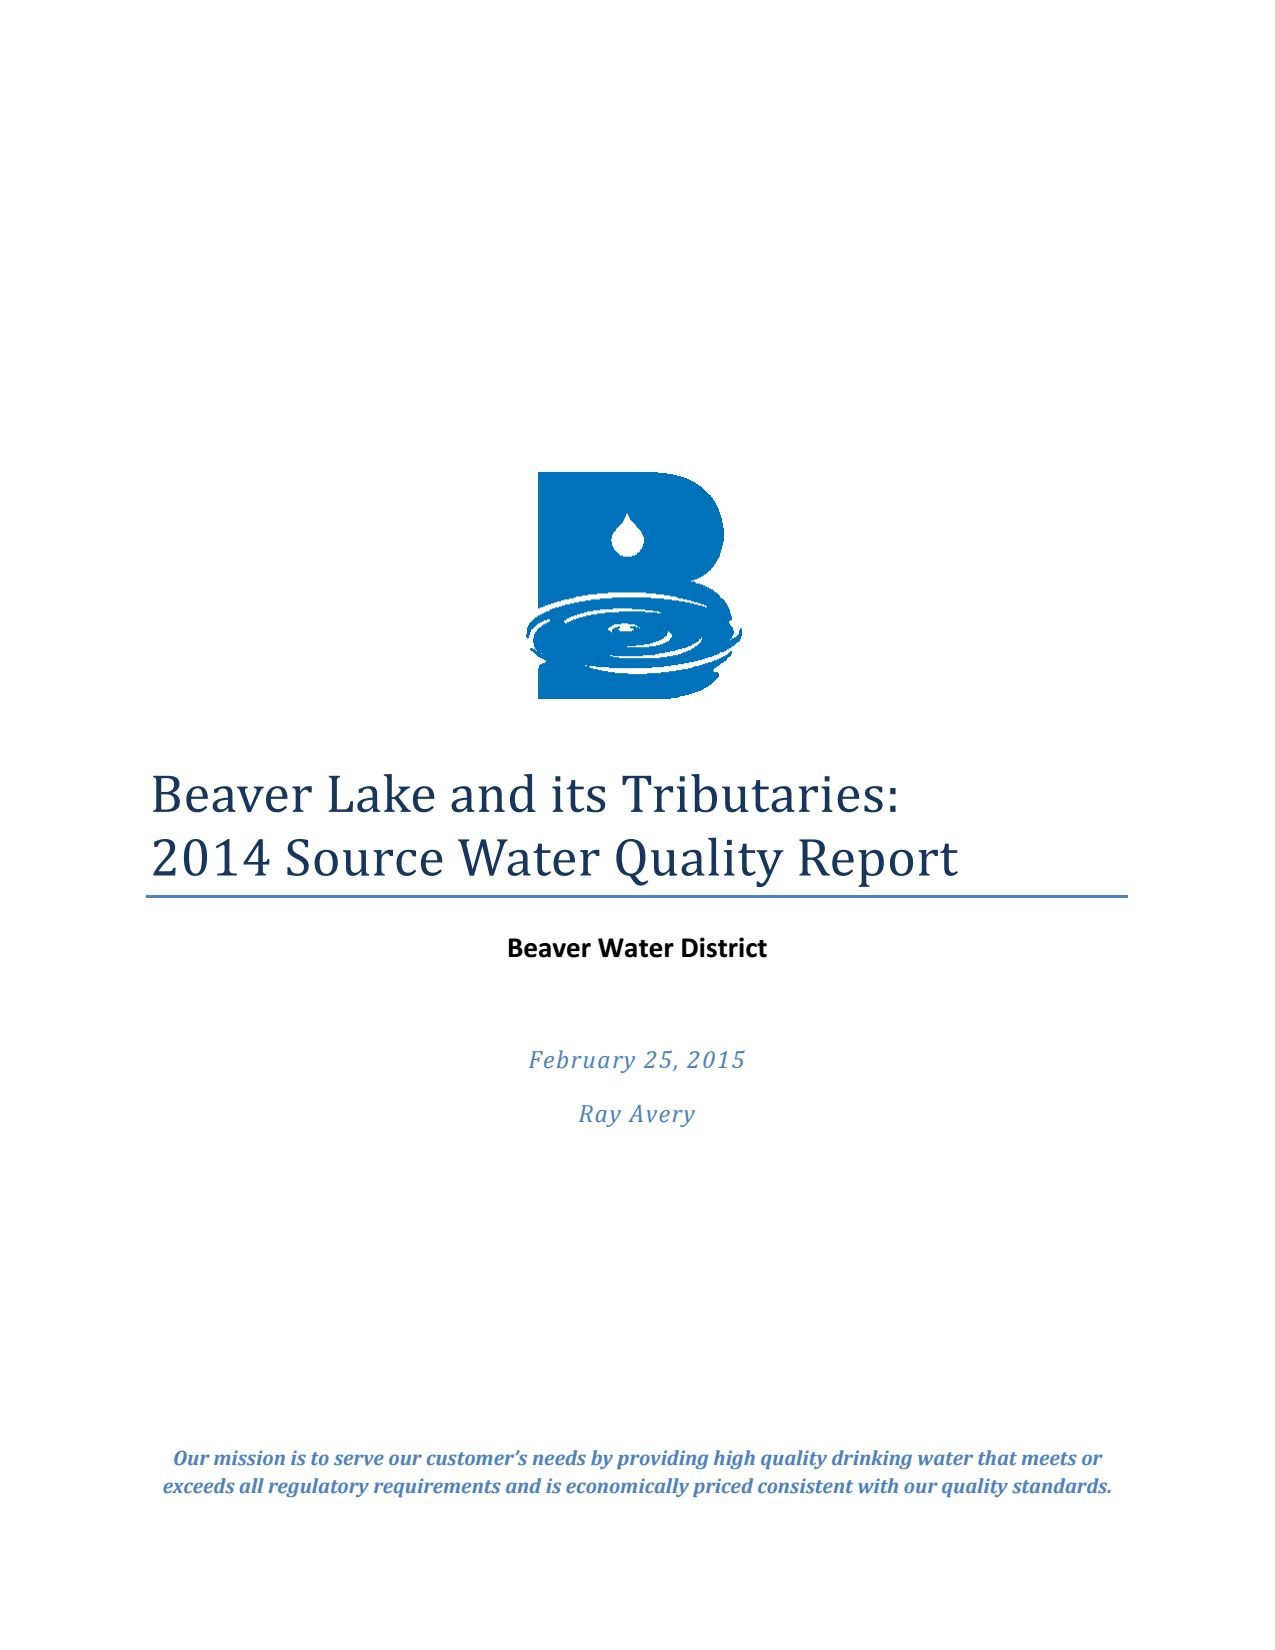 2014 Beaver Lake Water Quality Report